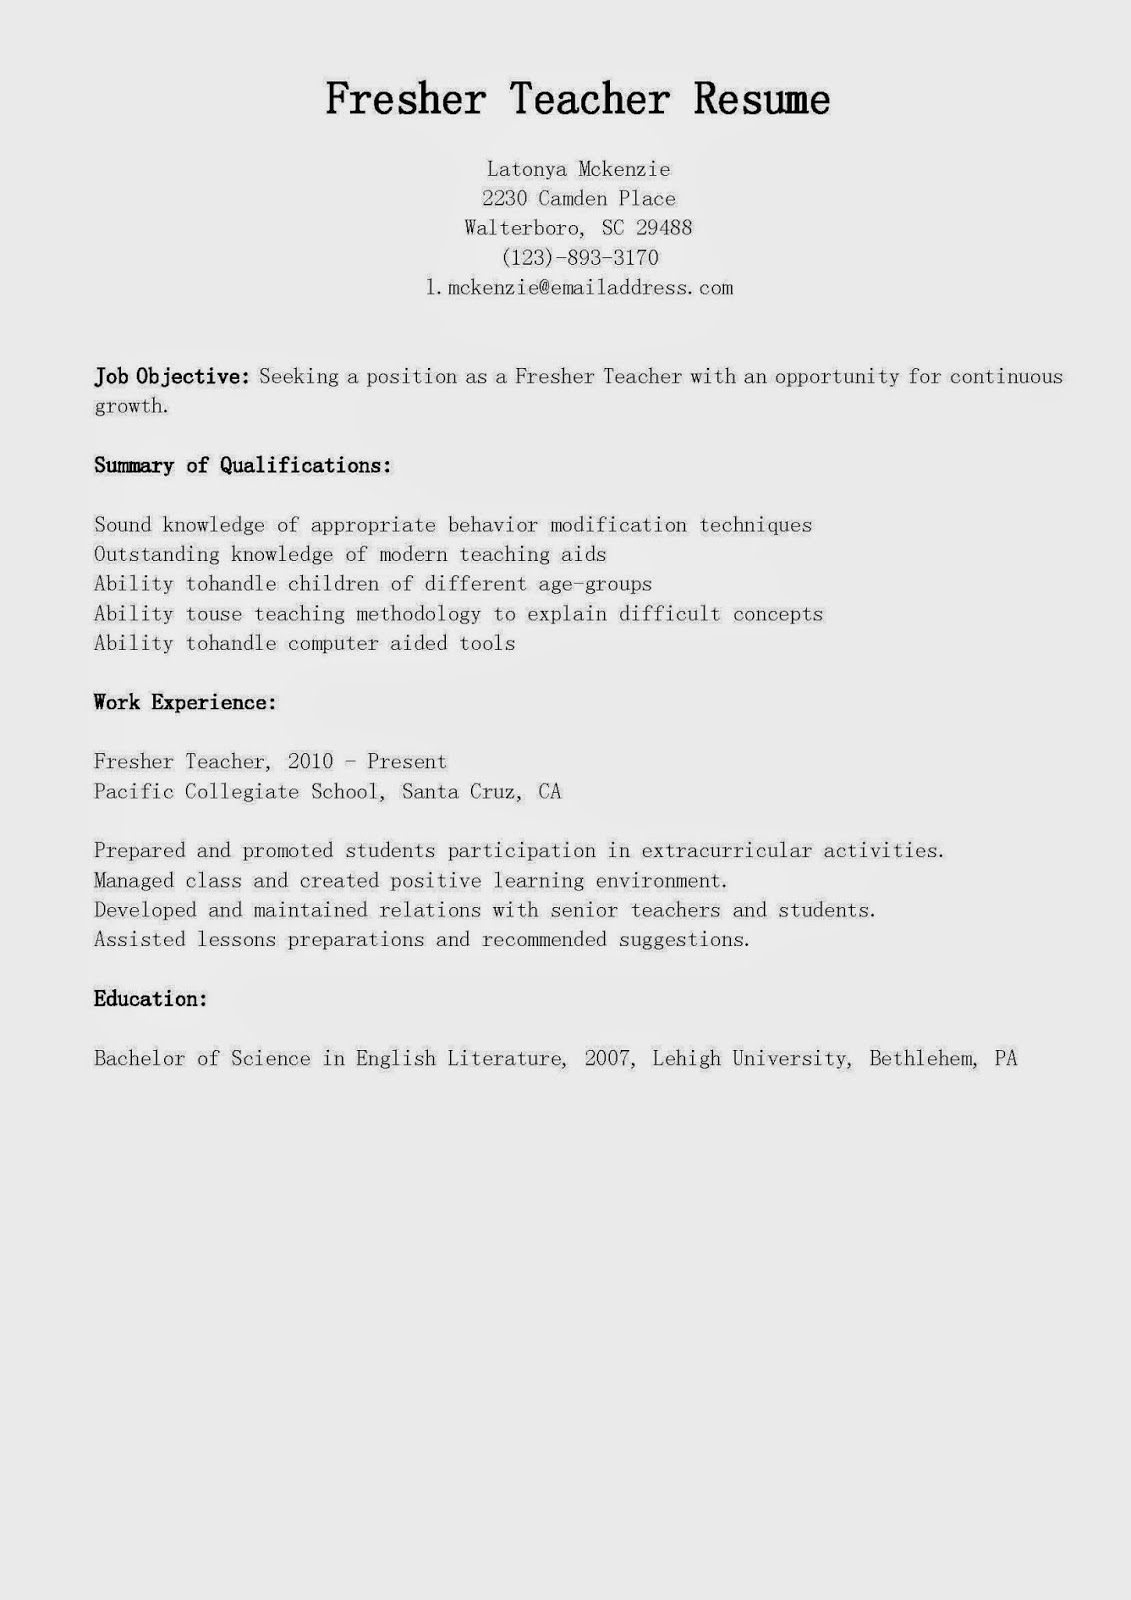 Resume Formats For High School Students 12 Free High School Student Resume Examples For Teens Samples Of Summary Of Qualifications Pdf 2017 Simple